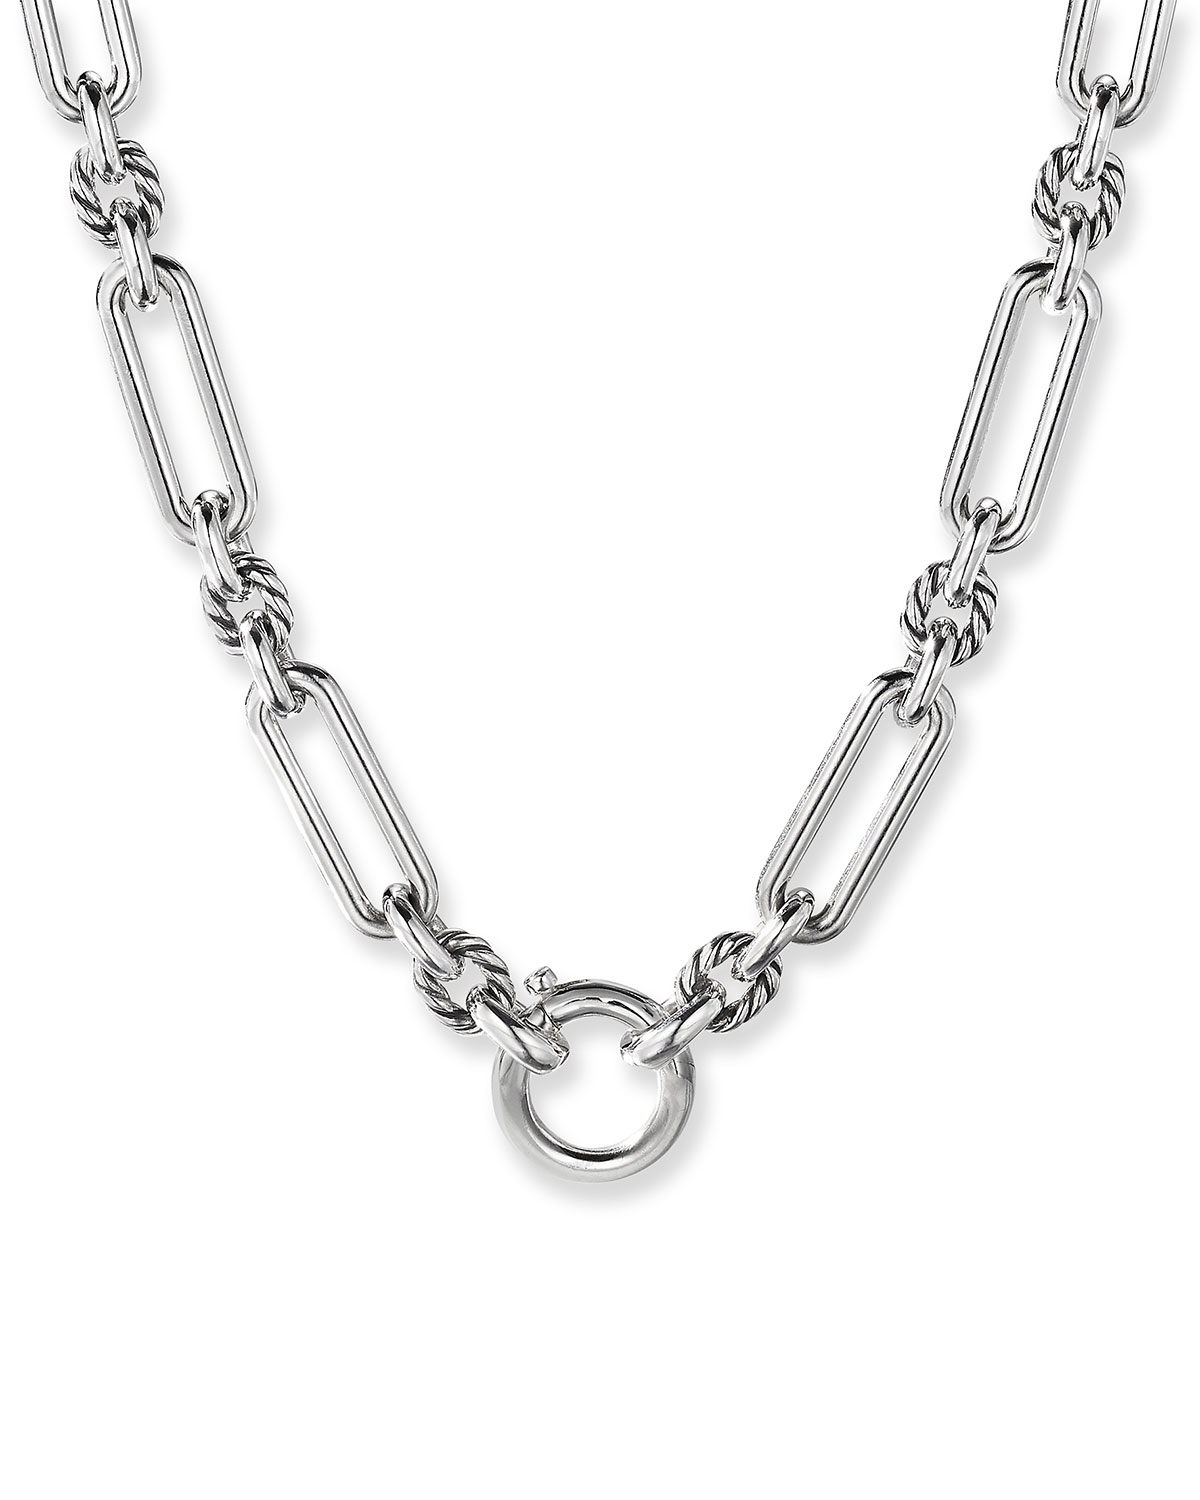 Lexington Chain Necklace in Sterling Silver